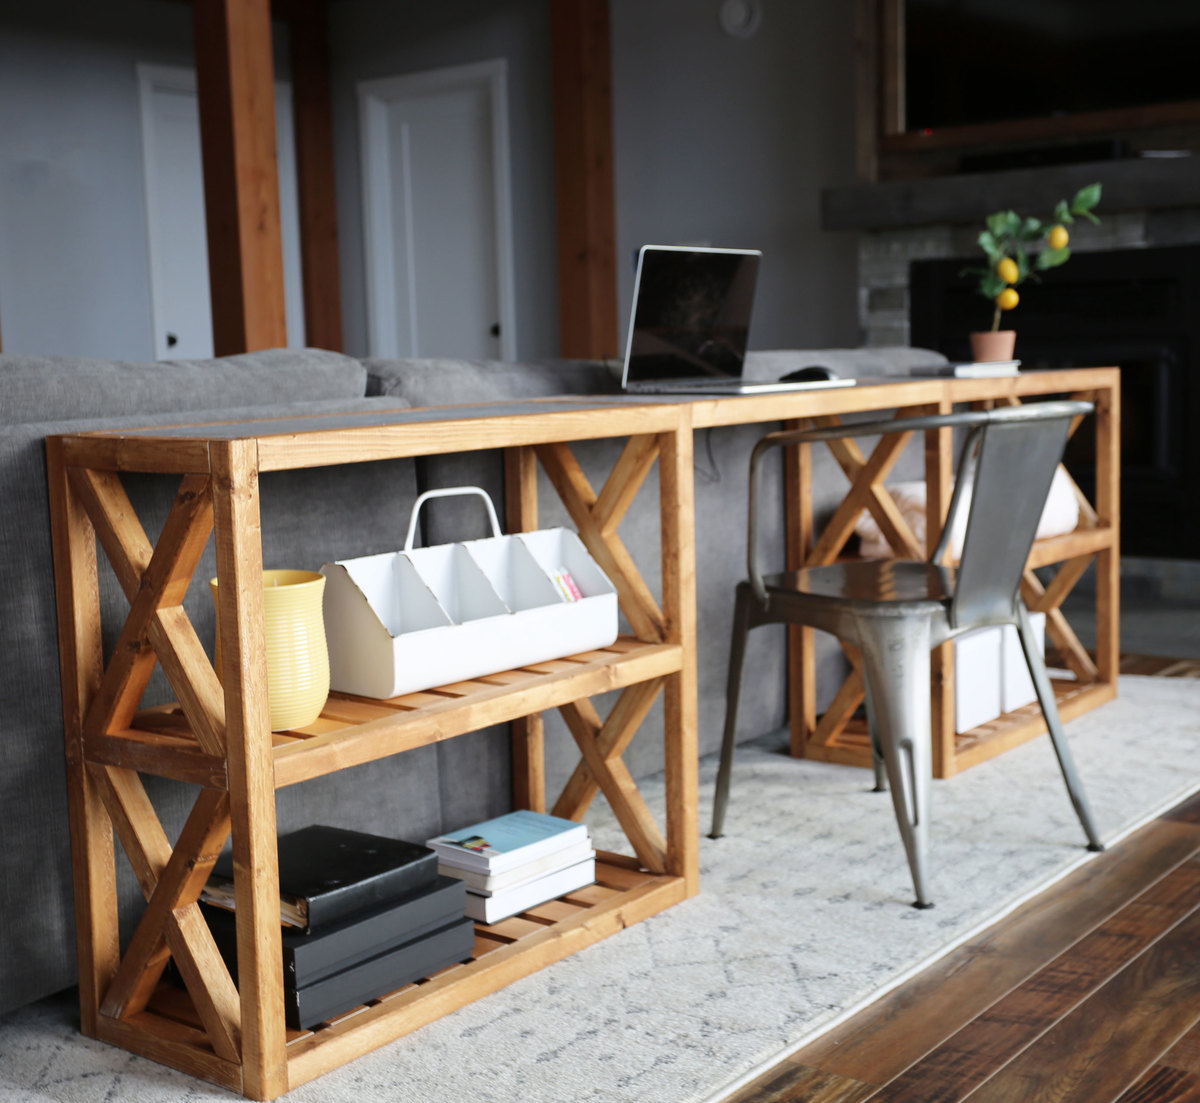 Ana White 20 Modern Farmhouse Console Table Inspired By Pottery